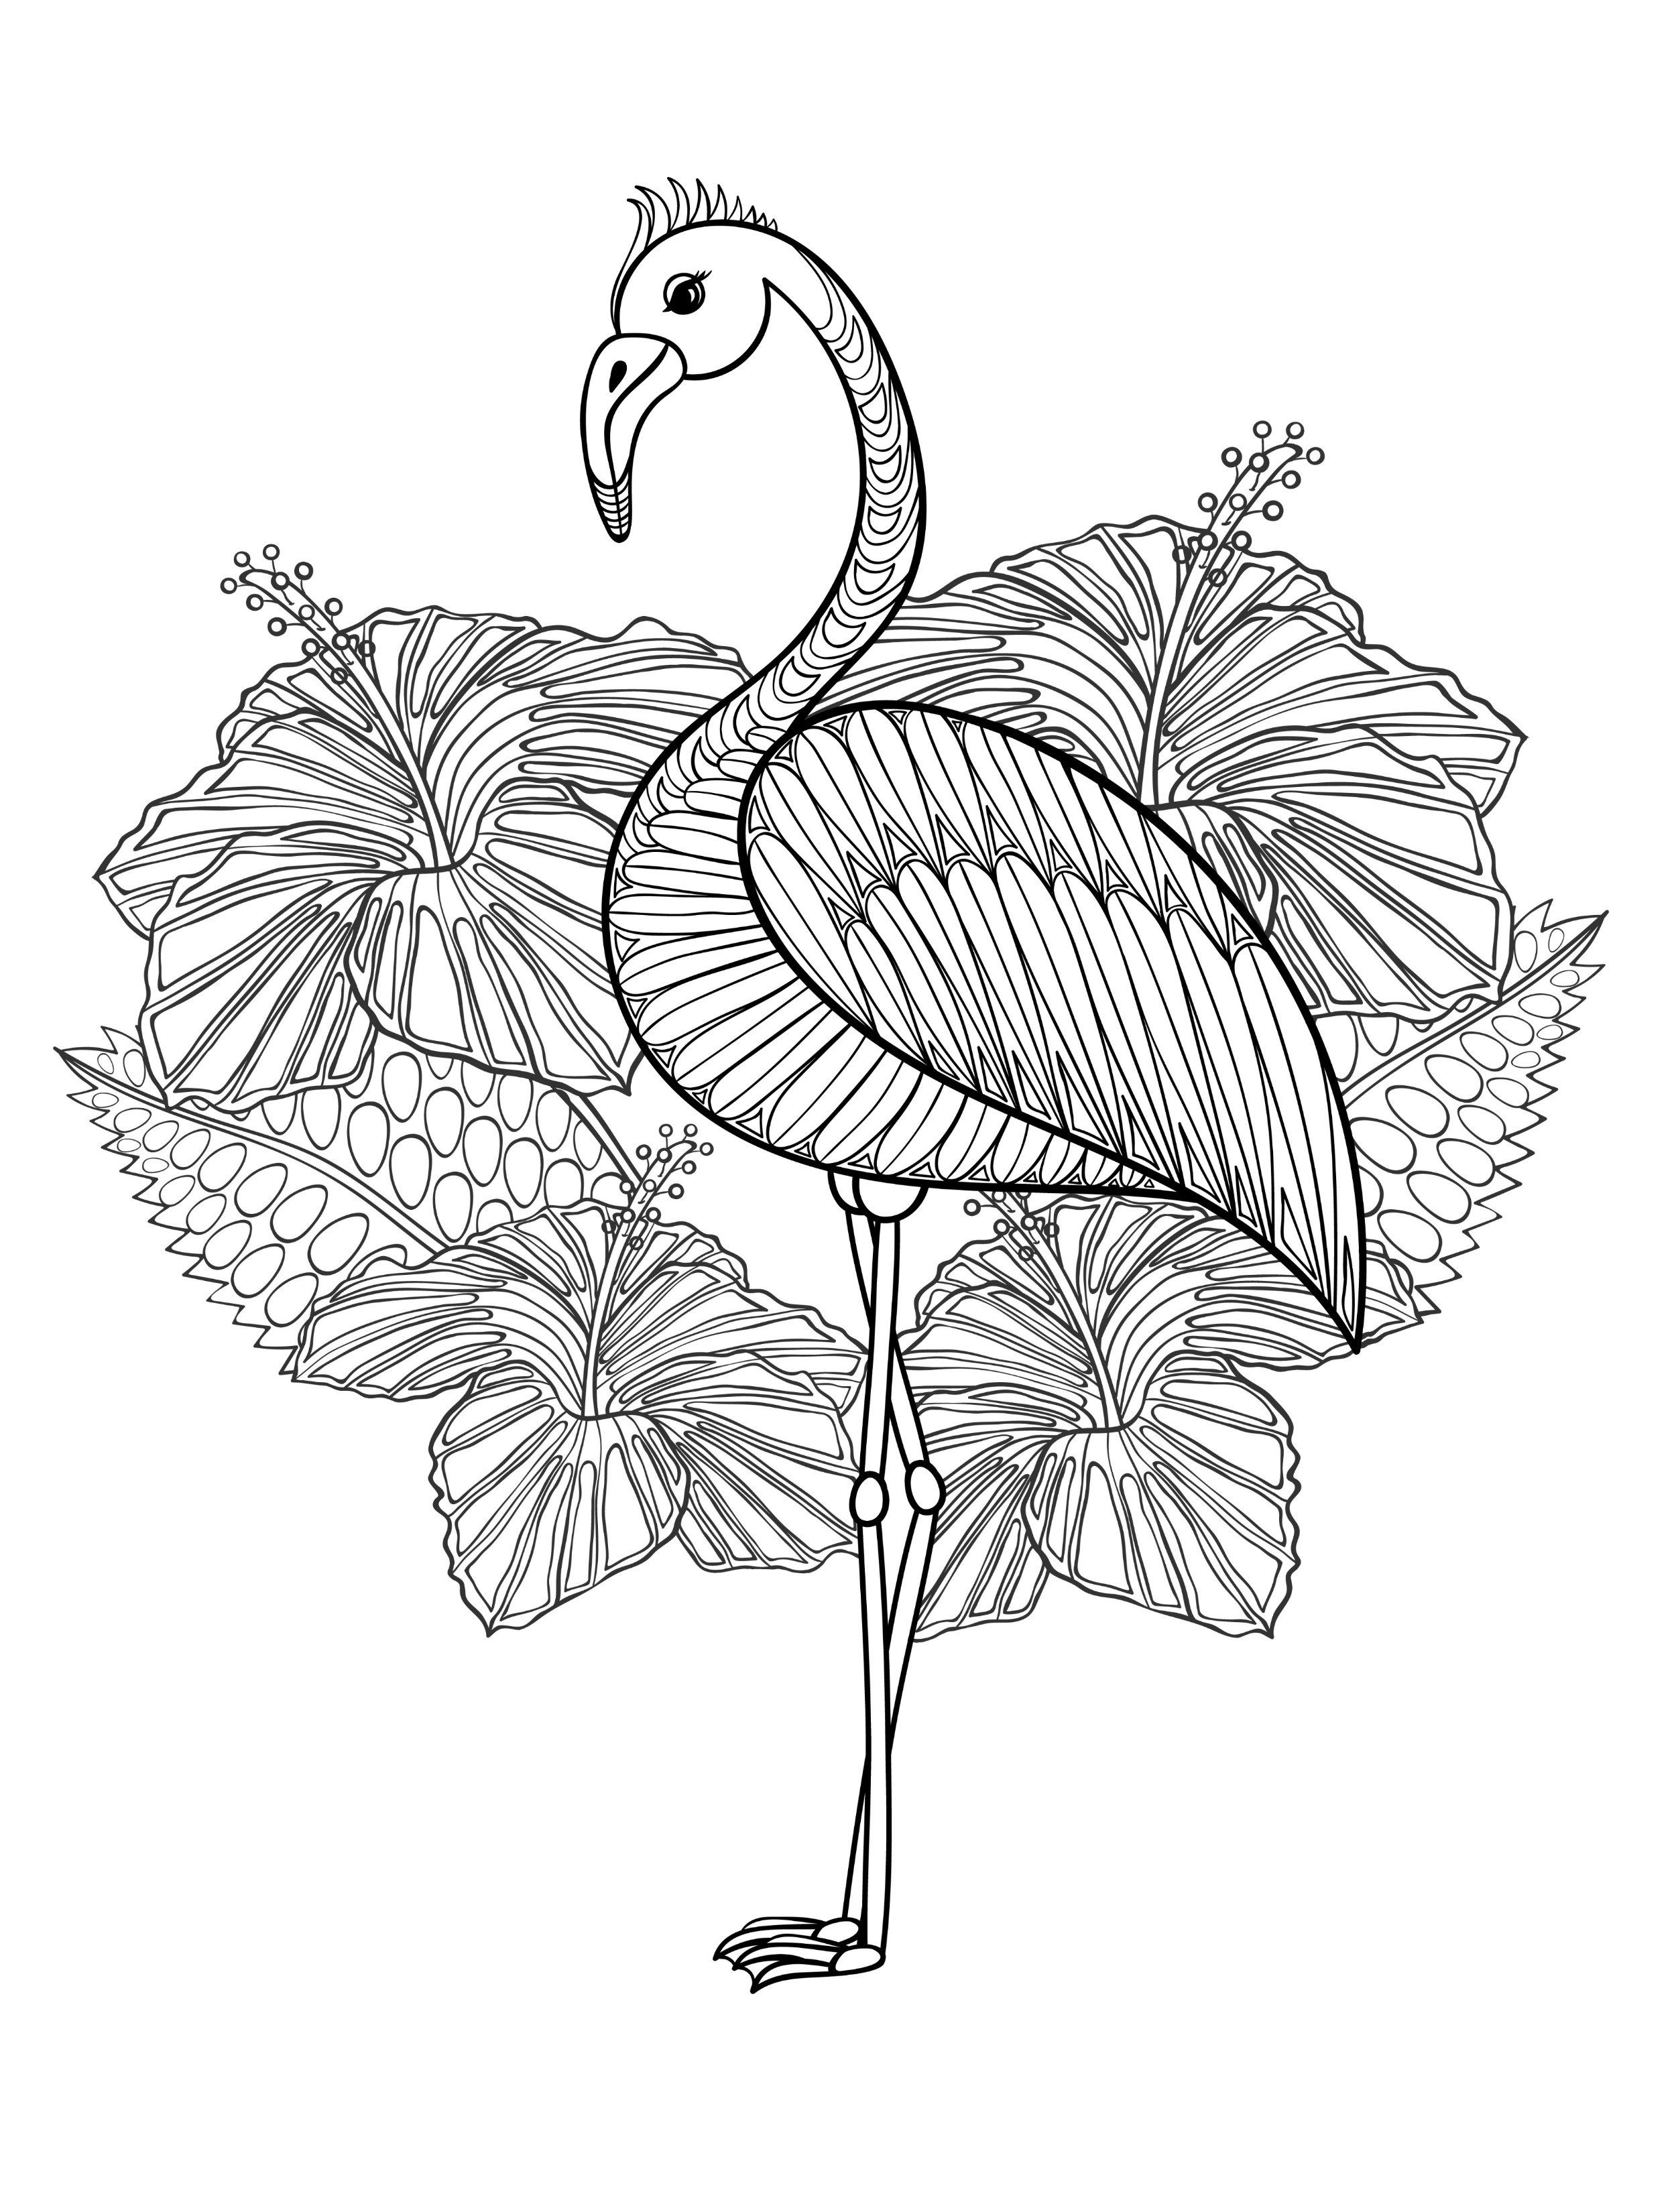 pictures of flamingos to color 20 gorgeous free printable adult coloring pages flamingo color flamingos pictures to of